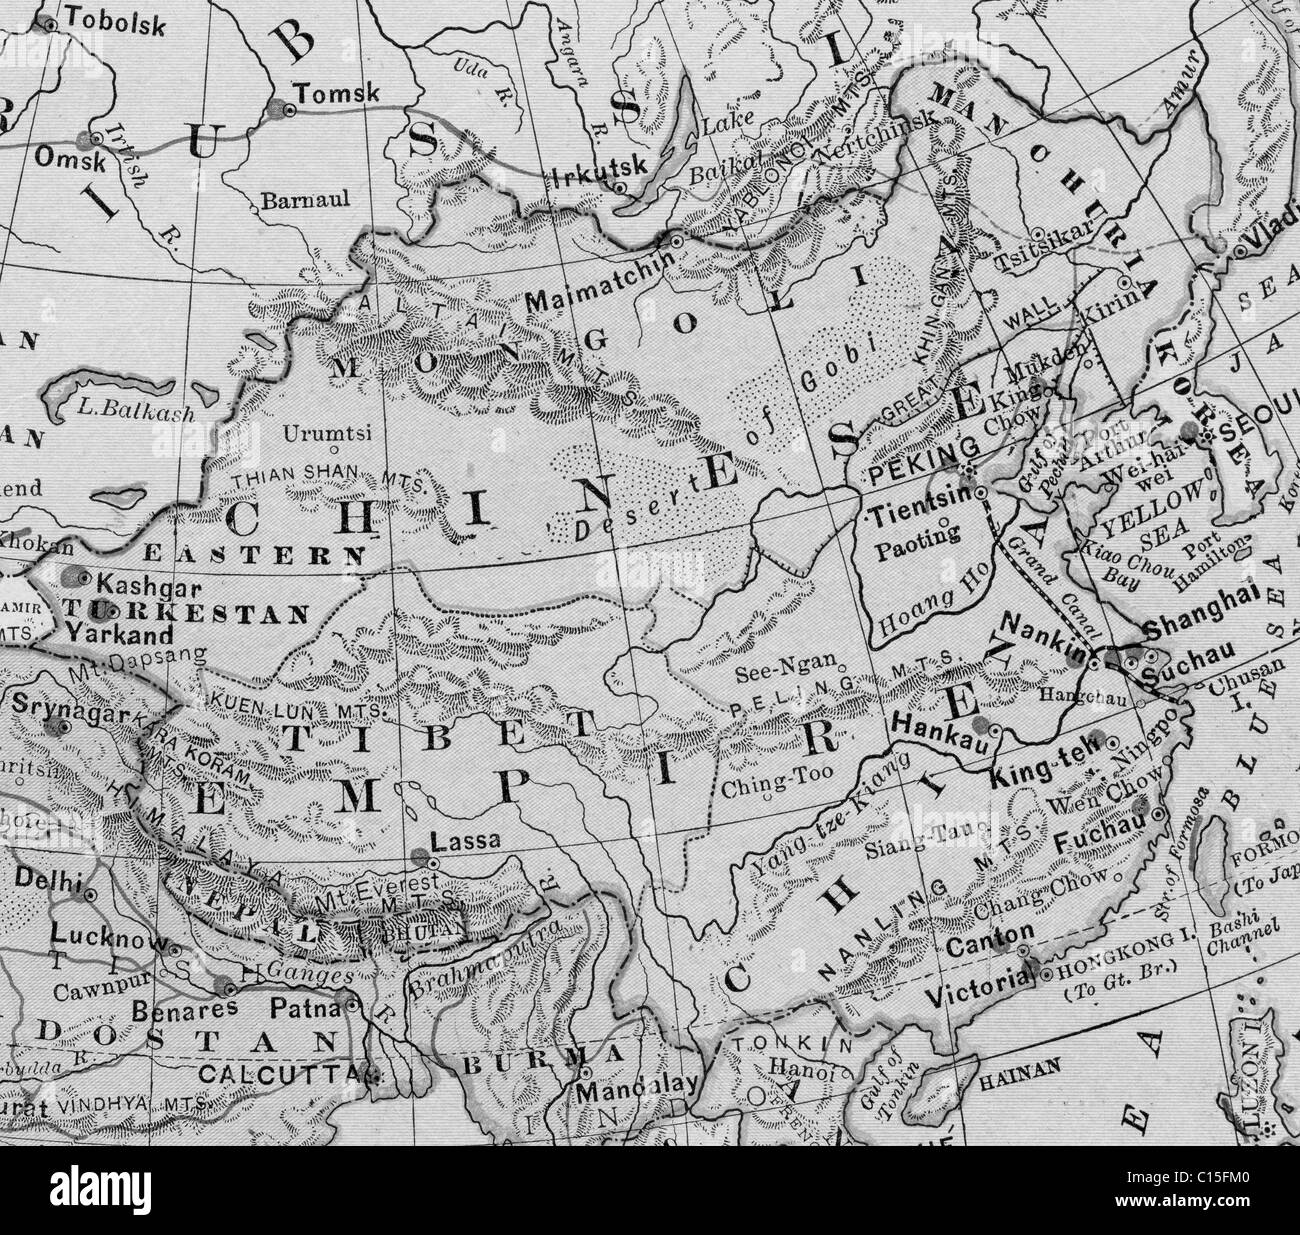 Chinese Geography Old Map Of Chinese Empire From Original Geography Textbook 1884